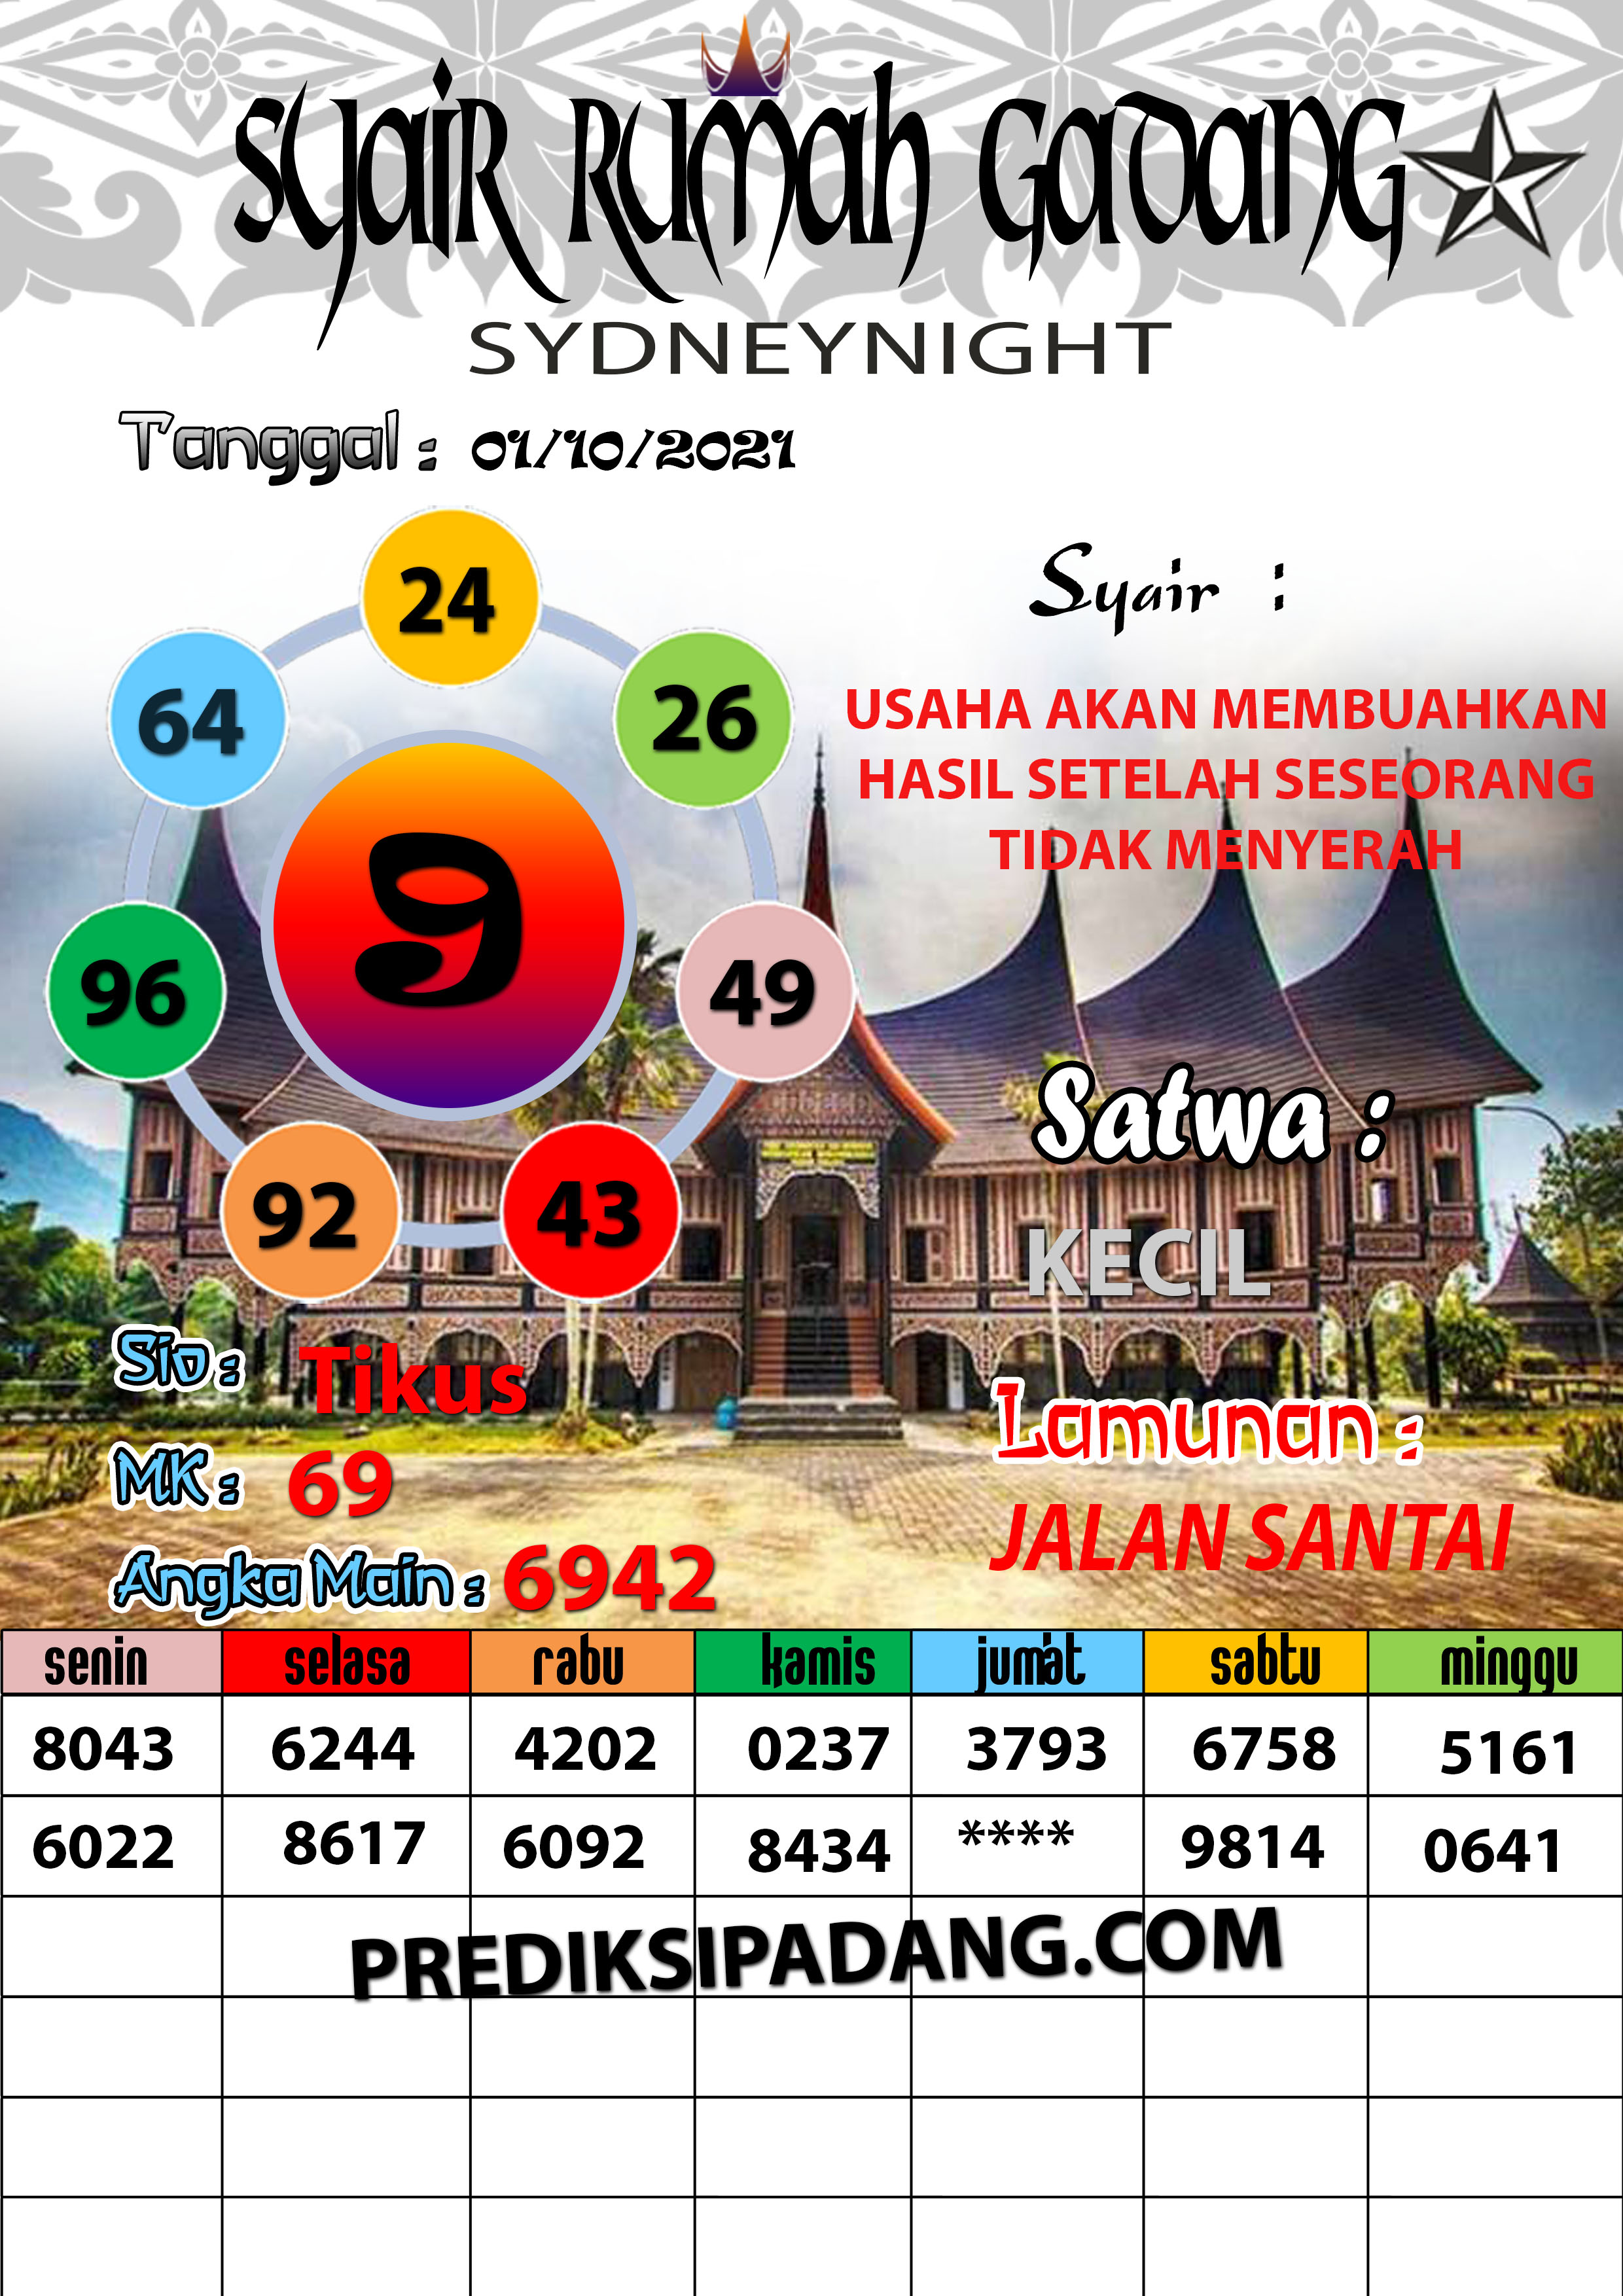 PADANG%20TOTO%20SIDNEYNIGHT-Recovered-Recovered%286%29.jpg